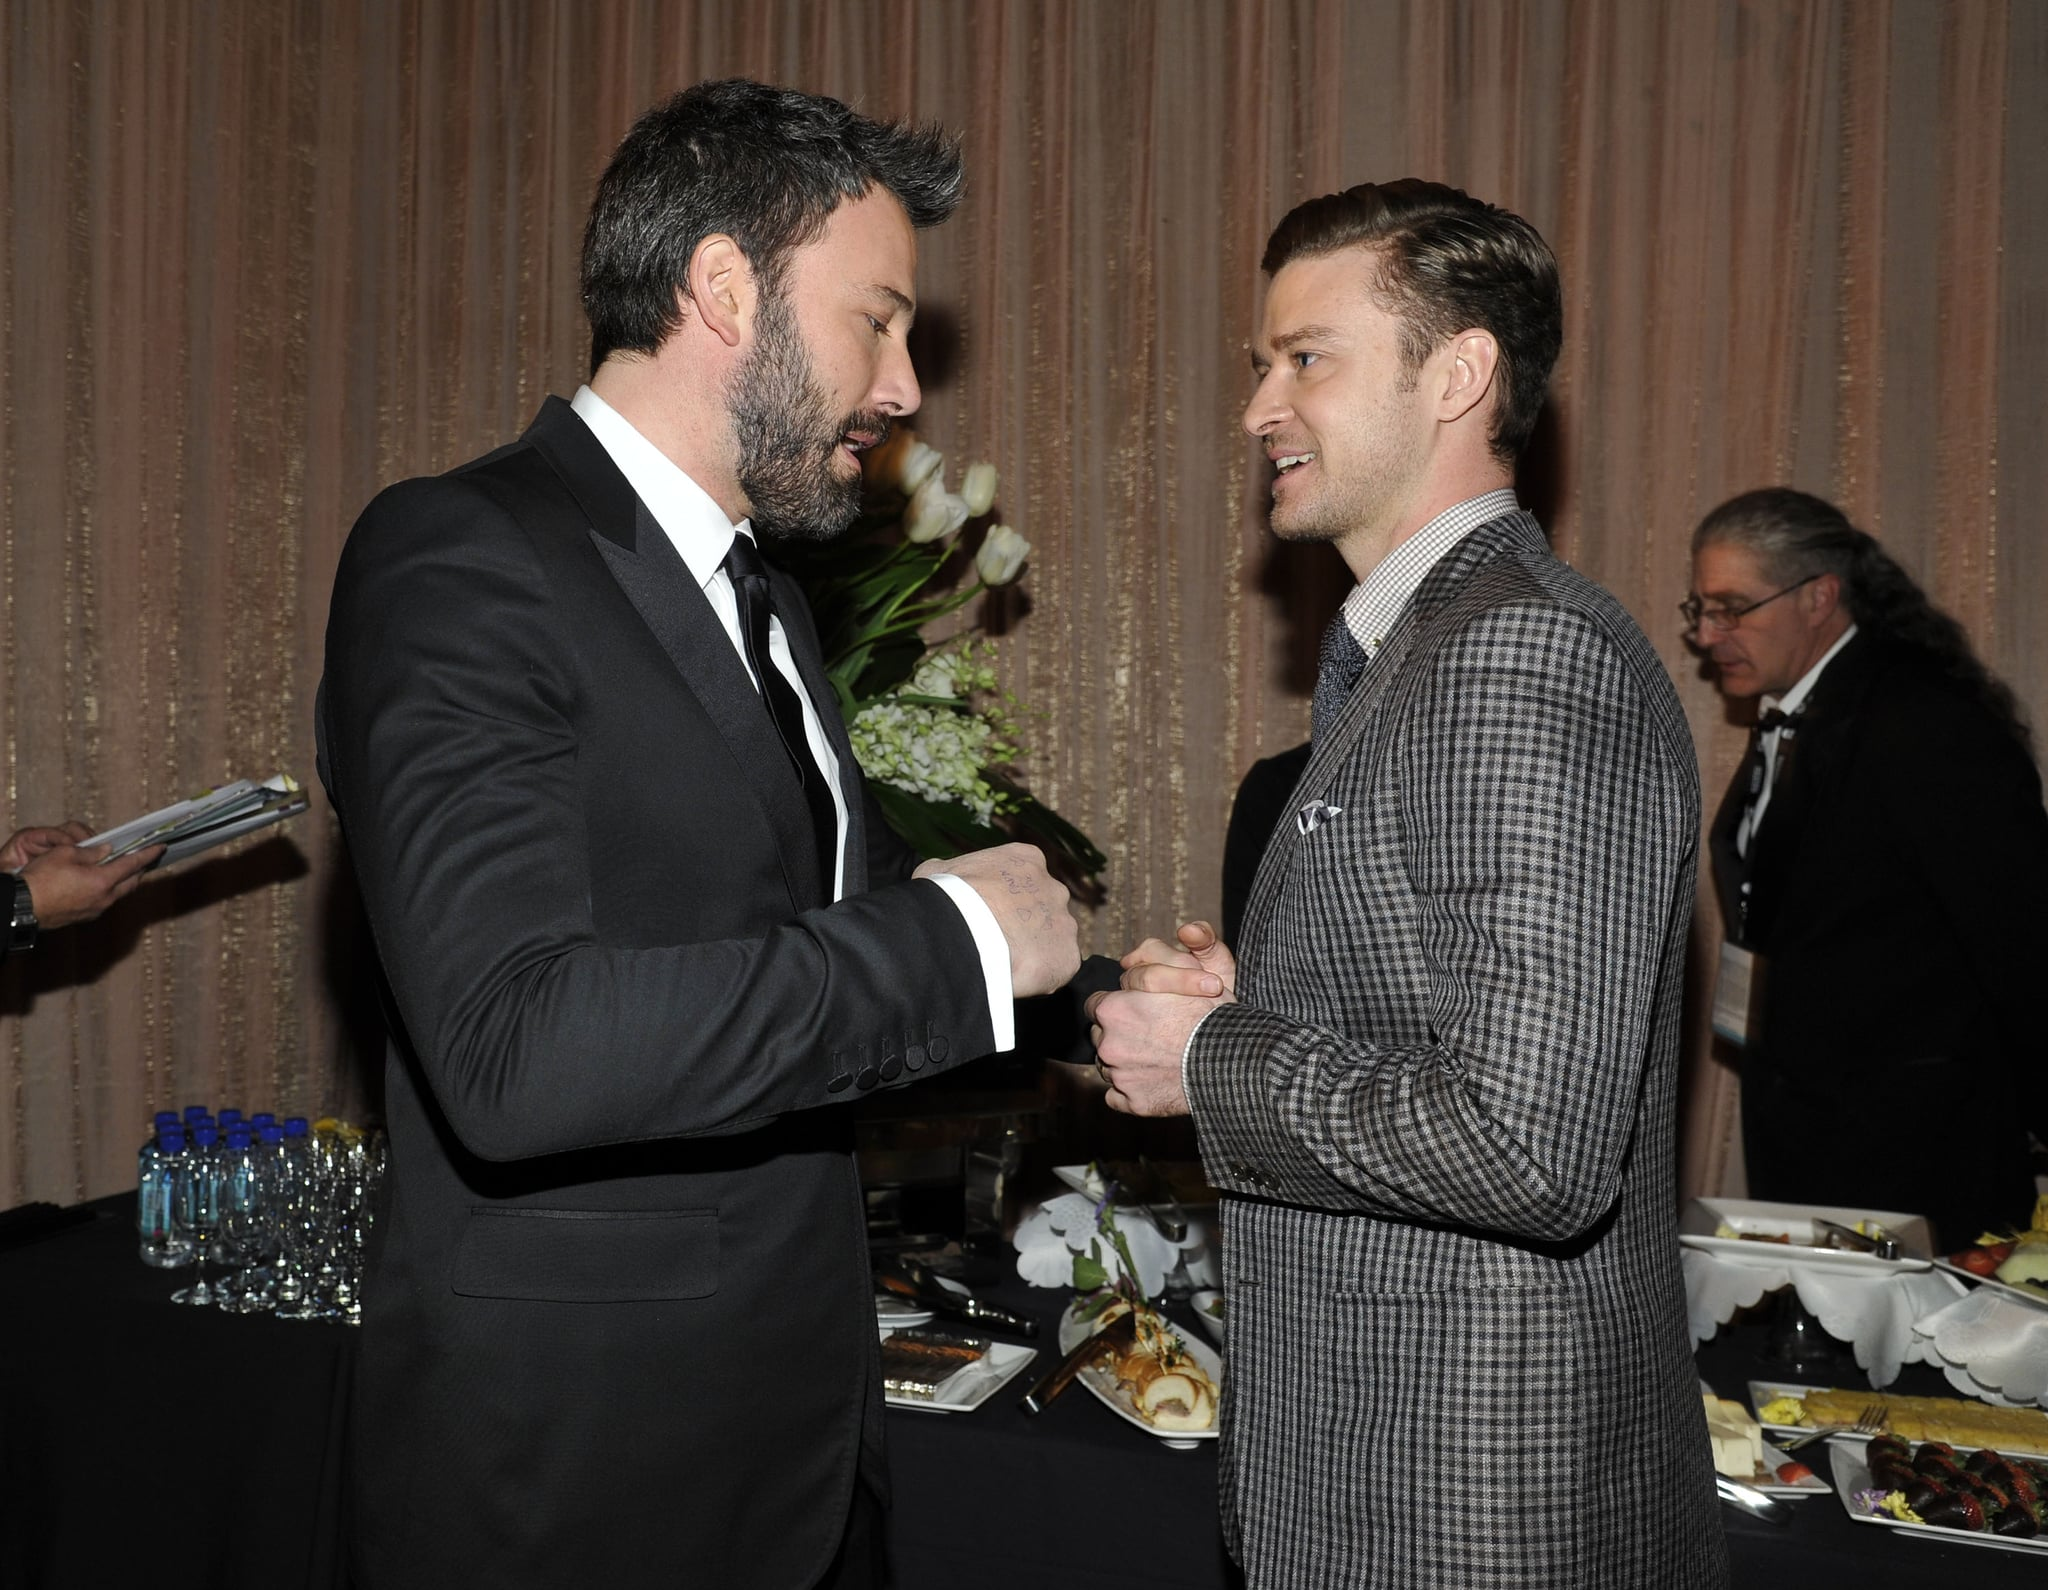 Ben Affleck stopped to chat backstage at the SAG Awards with Justin Timberlake.